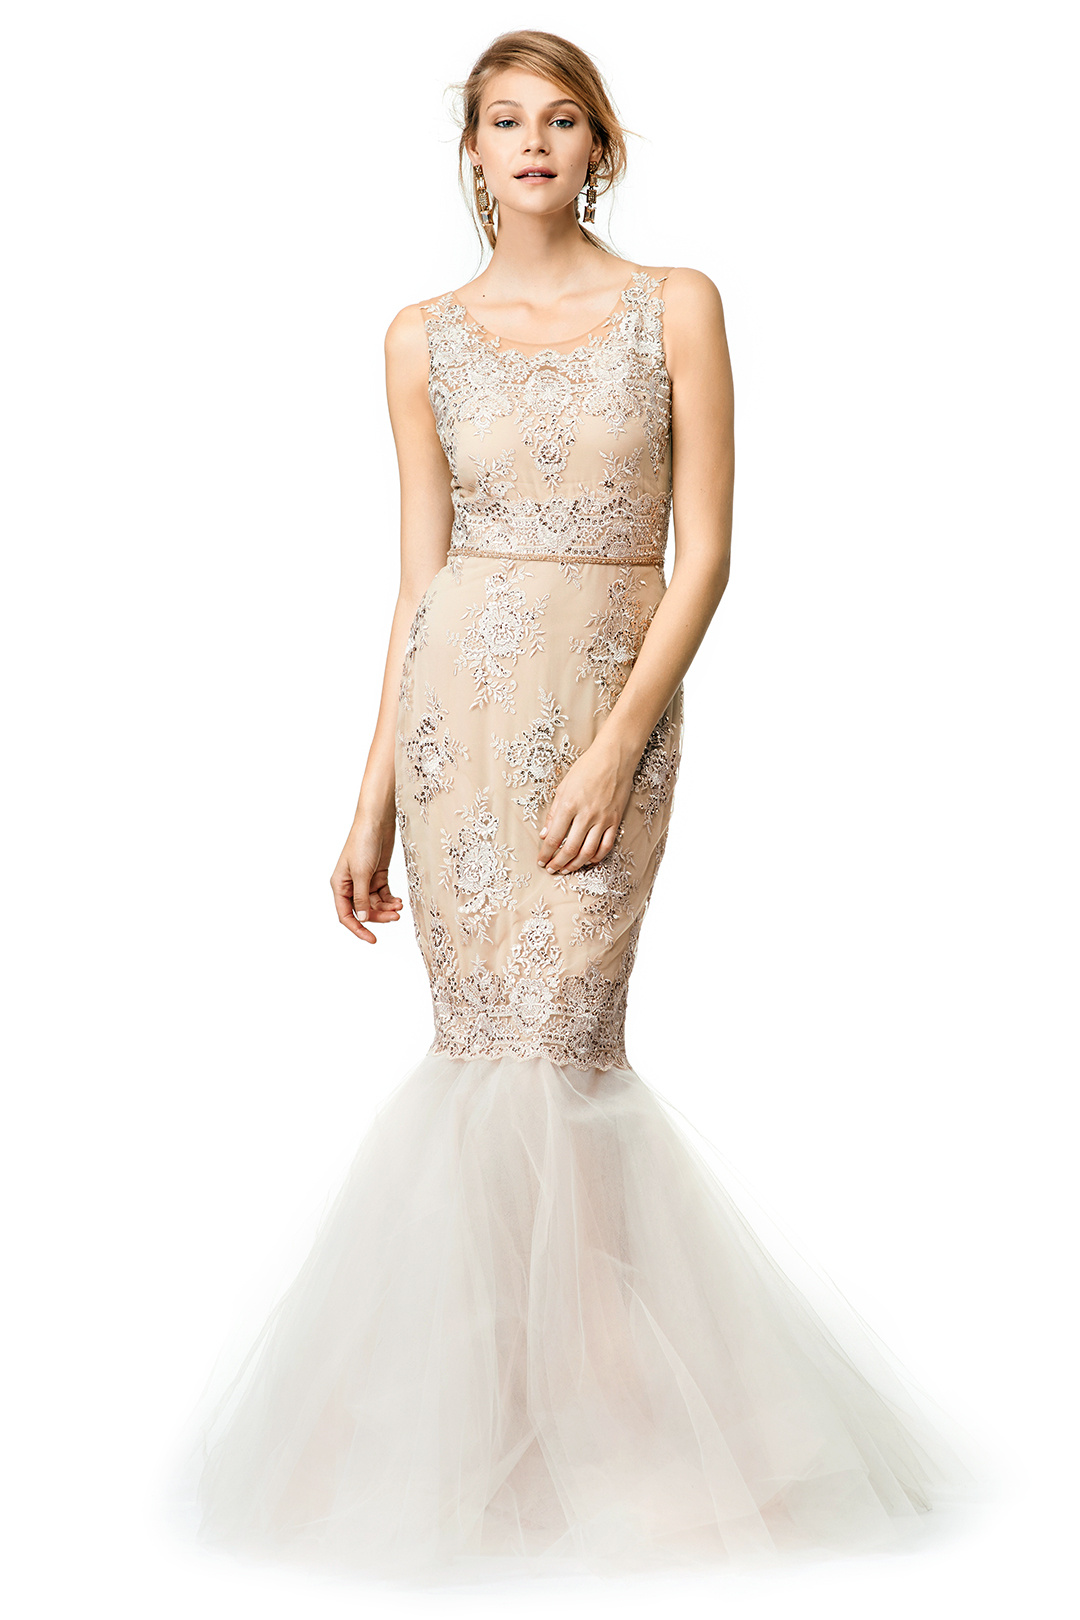 Shop for the perfect dress at David's Bridal with prom dresses available in sizes Shop online or book an appointment in store online! Looking for cute and stylish prom dresses?